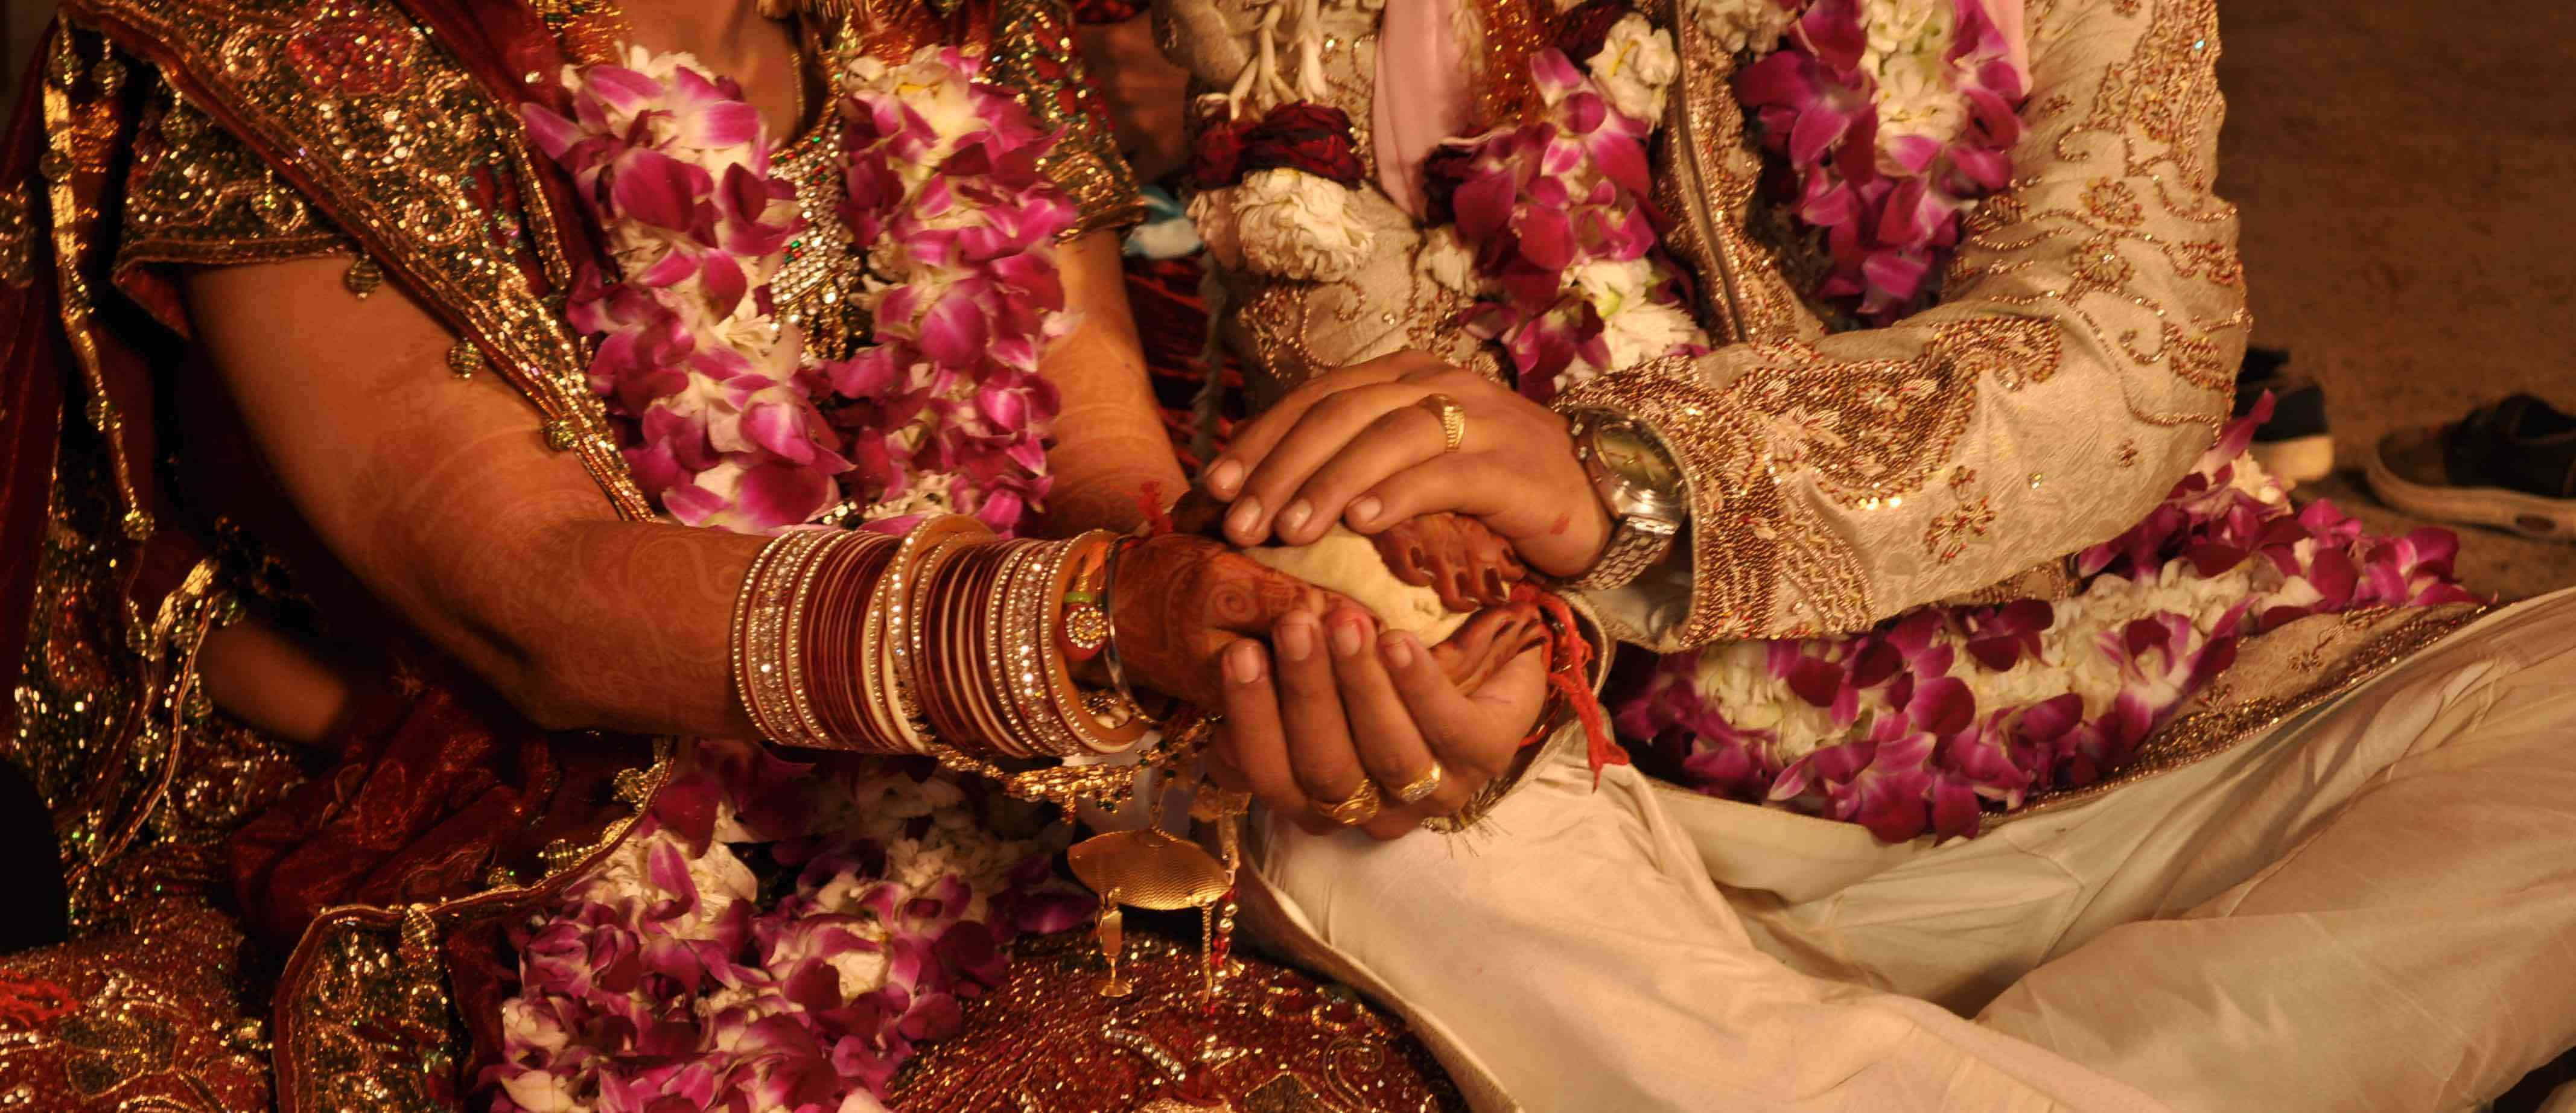 matrimonial detectives in delhi